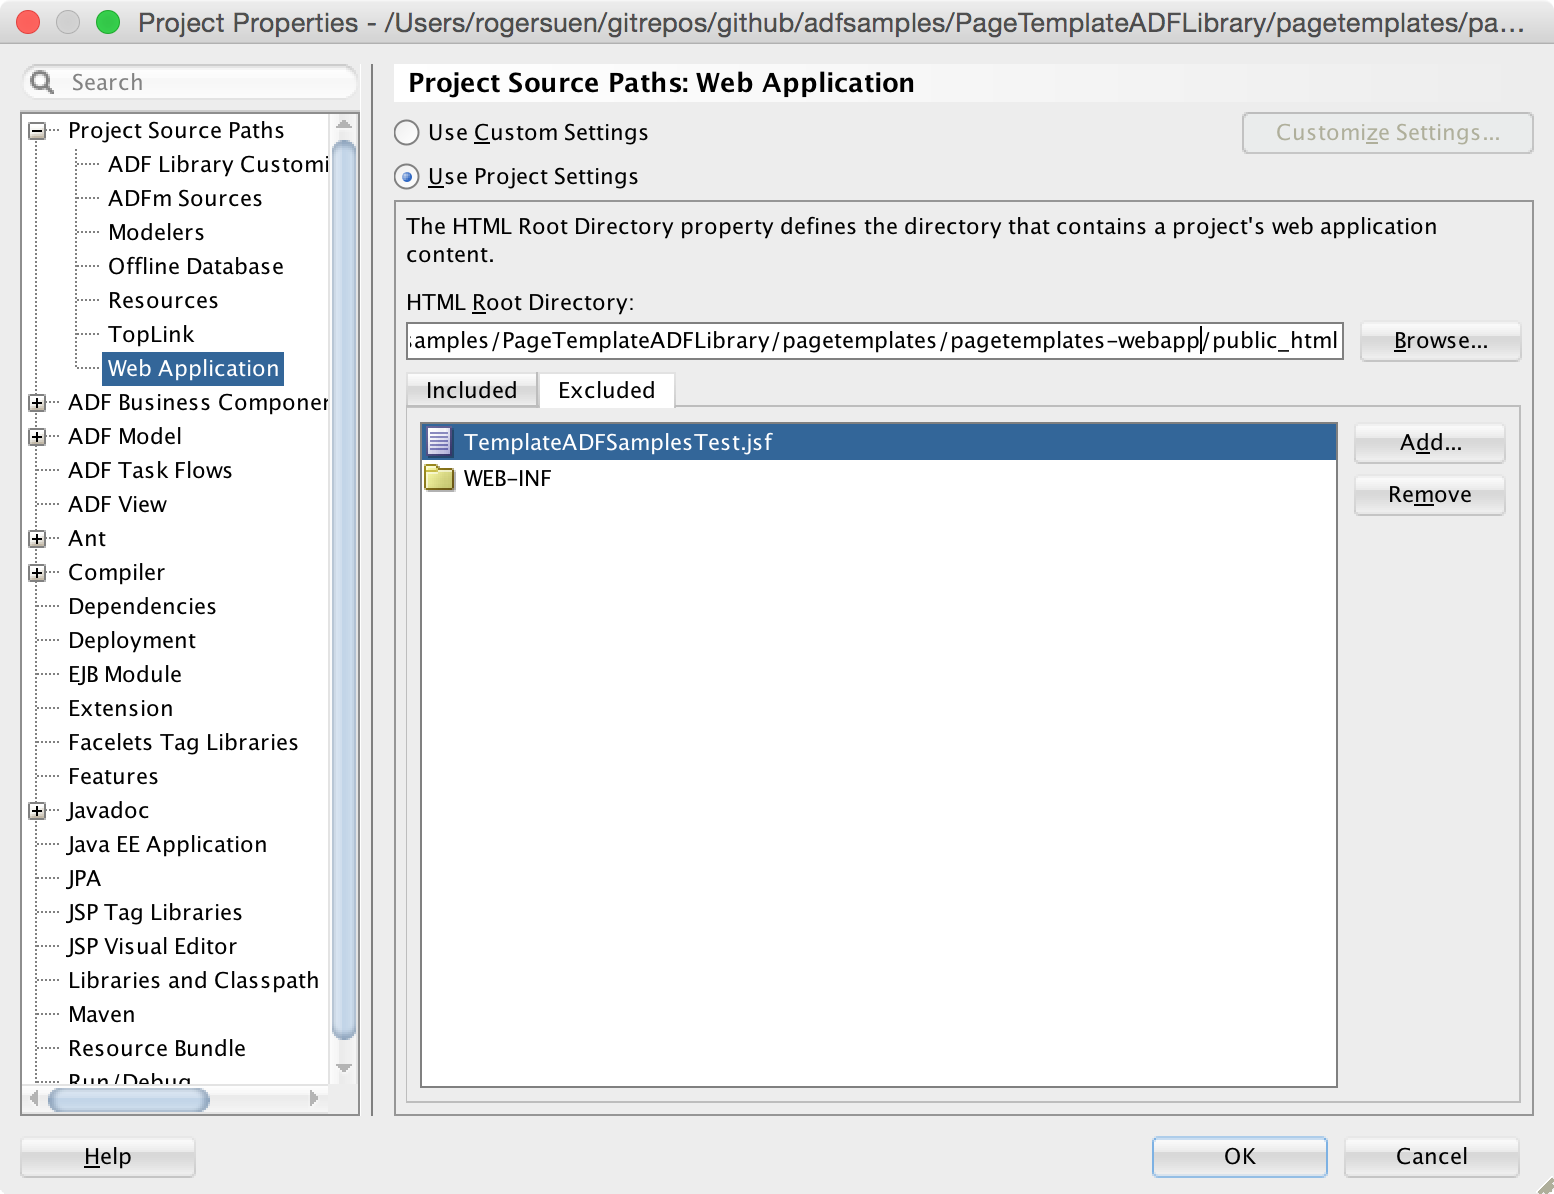 Image: Project Properties / Project Source Paths: Web Application